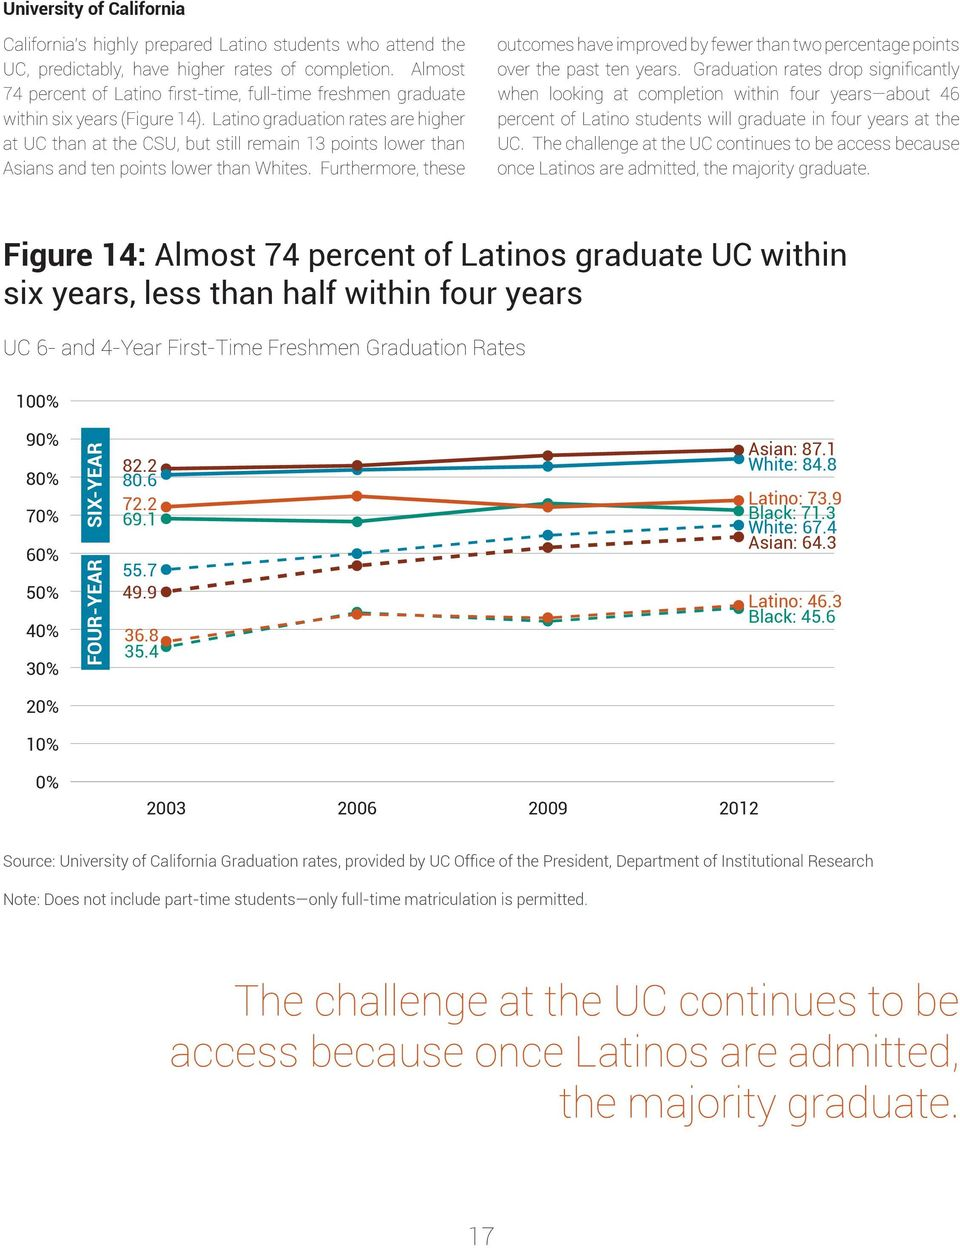 Latino graduation rates are higher at UC than at the CSU, but still remain 13 points lower than Asians and ten points lower than Whites.